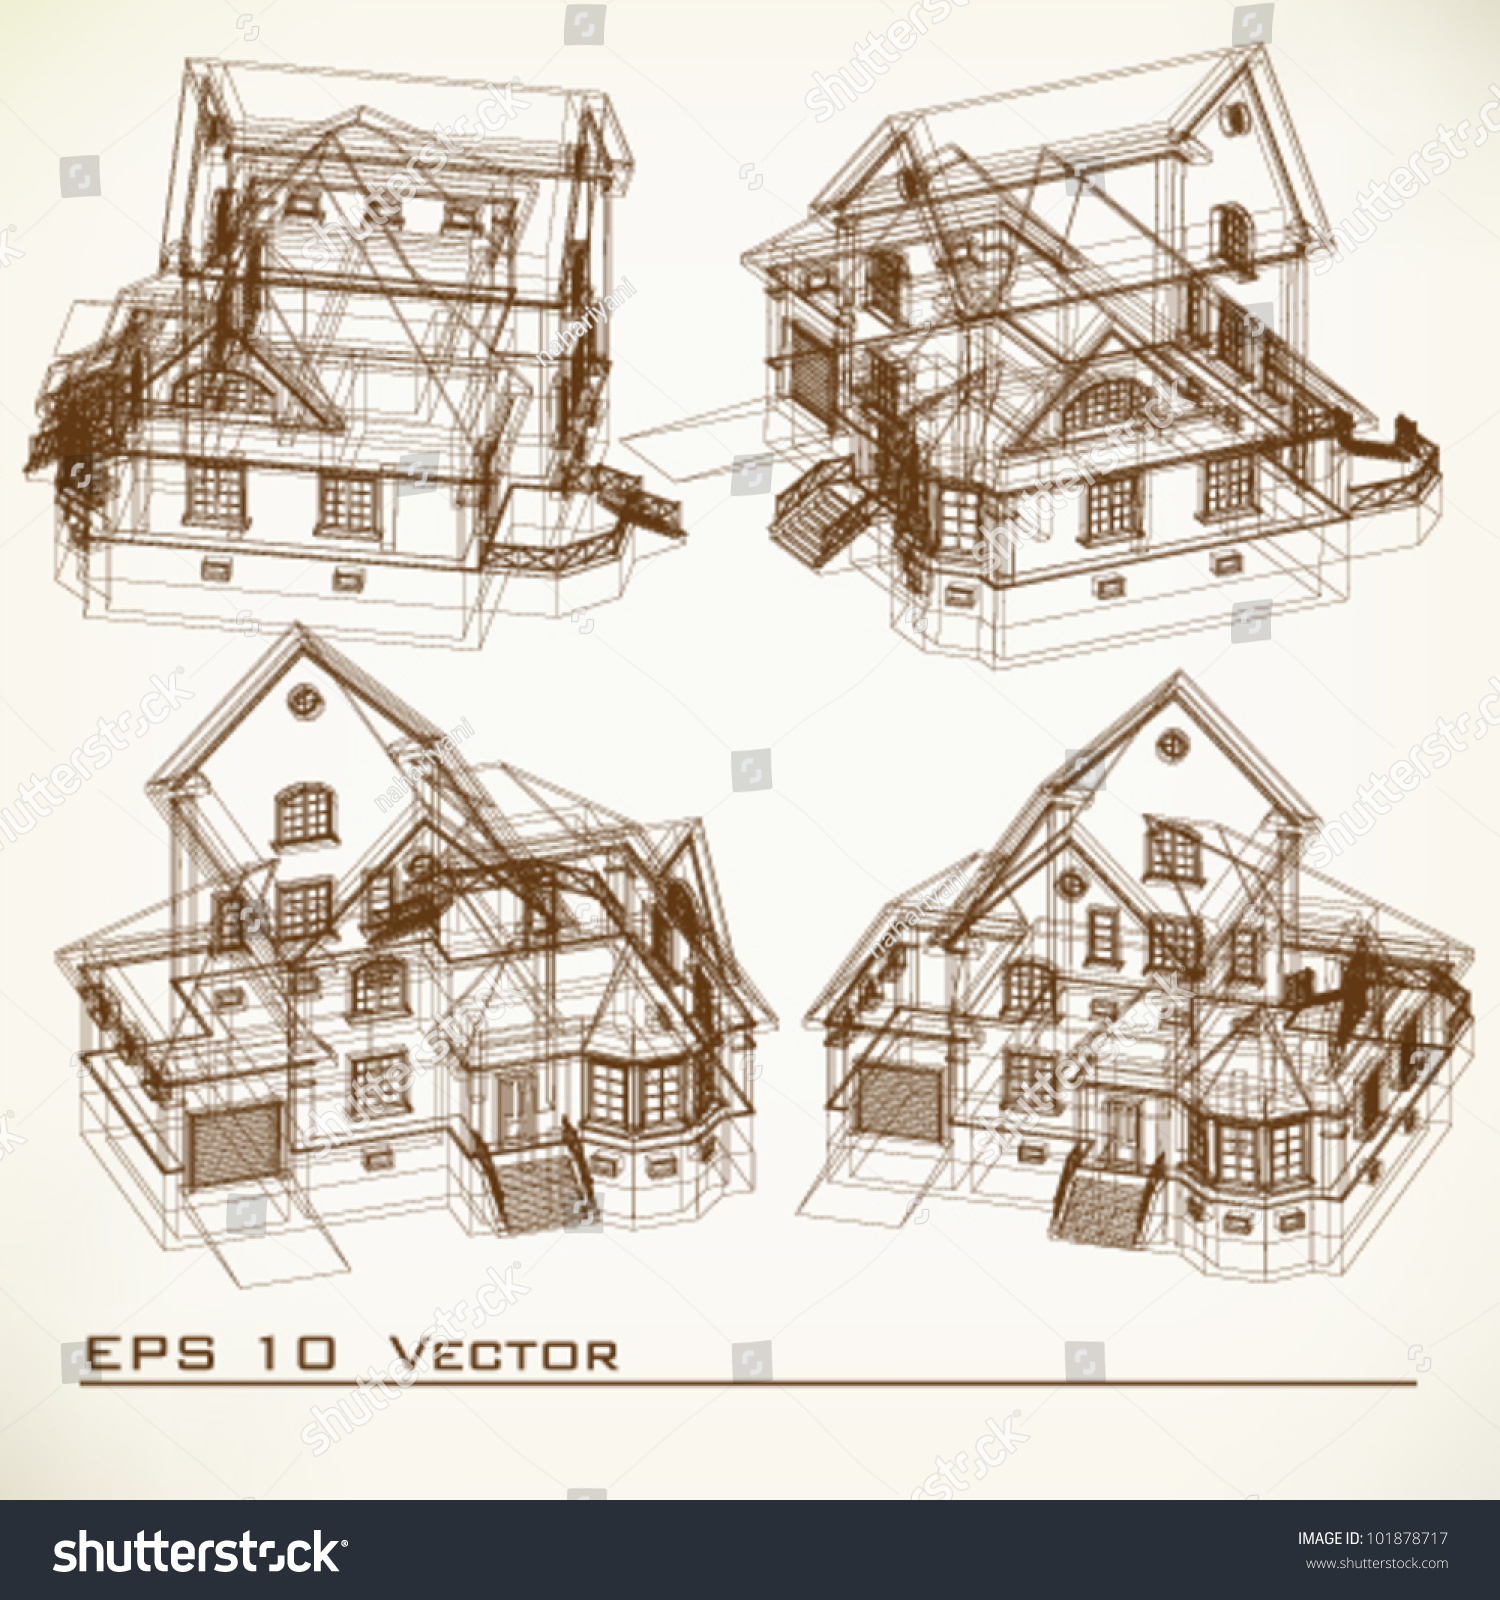 Set of building drawings architectural background part of architectural project architectural plan